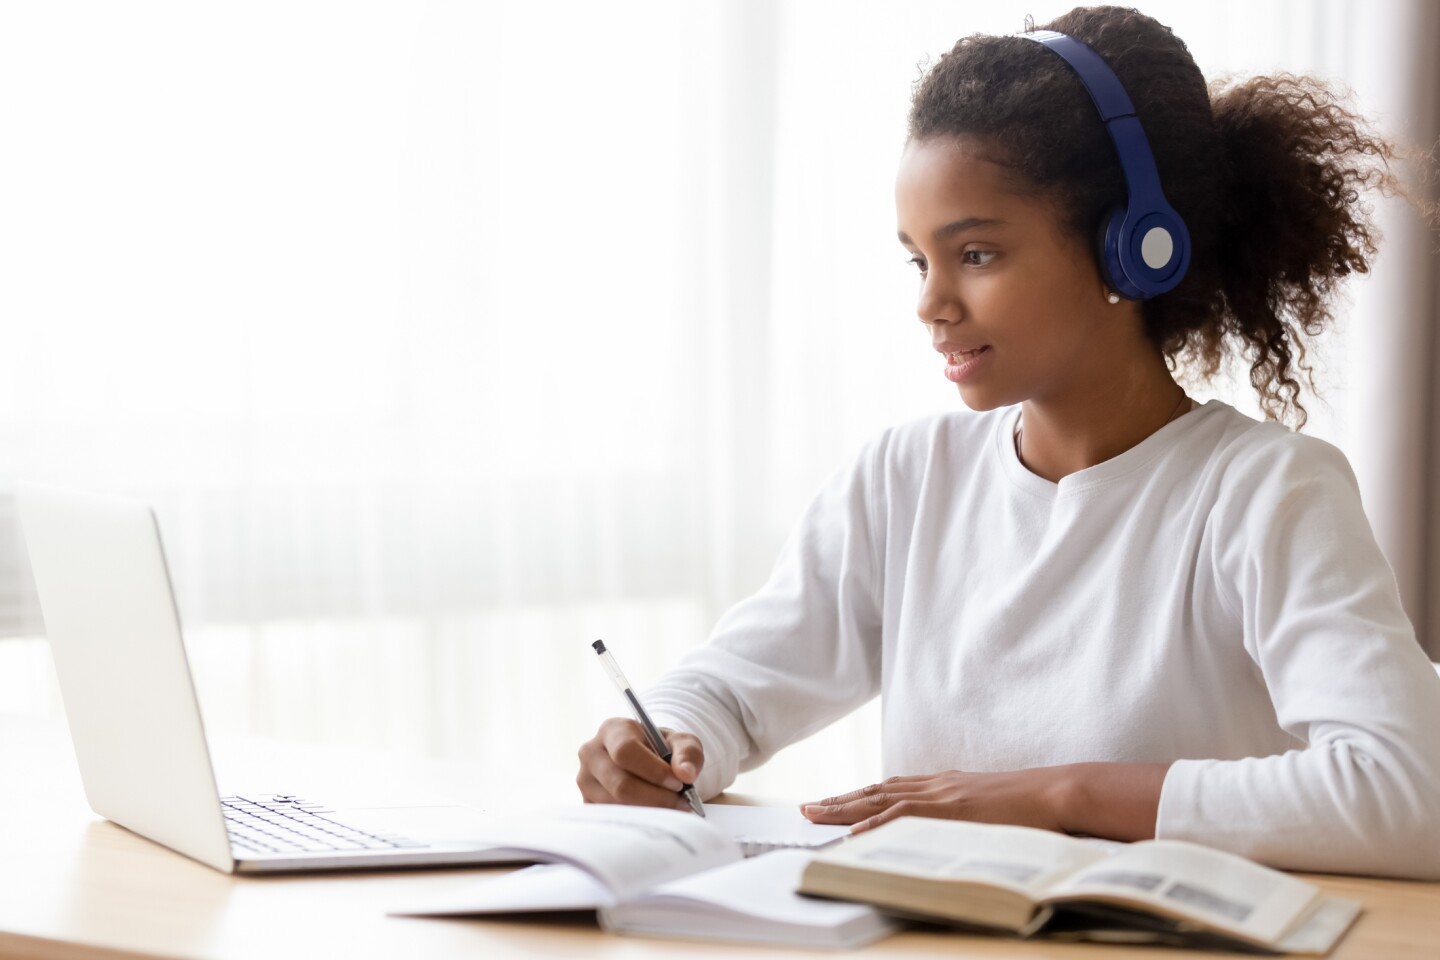 A young student wearing headphones and studying on a laptop.